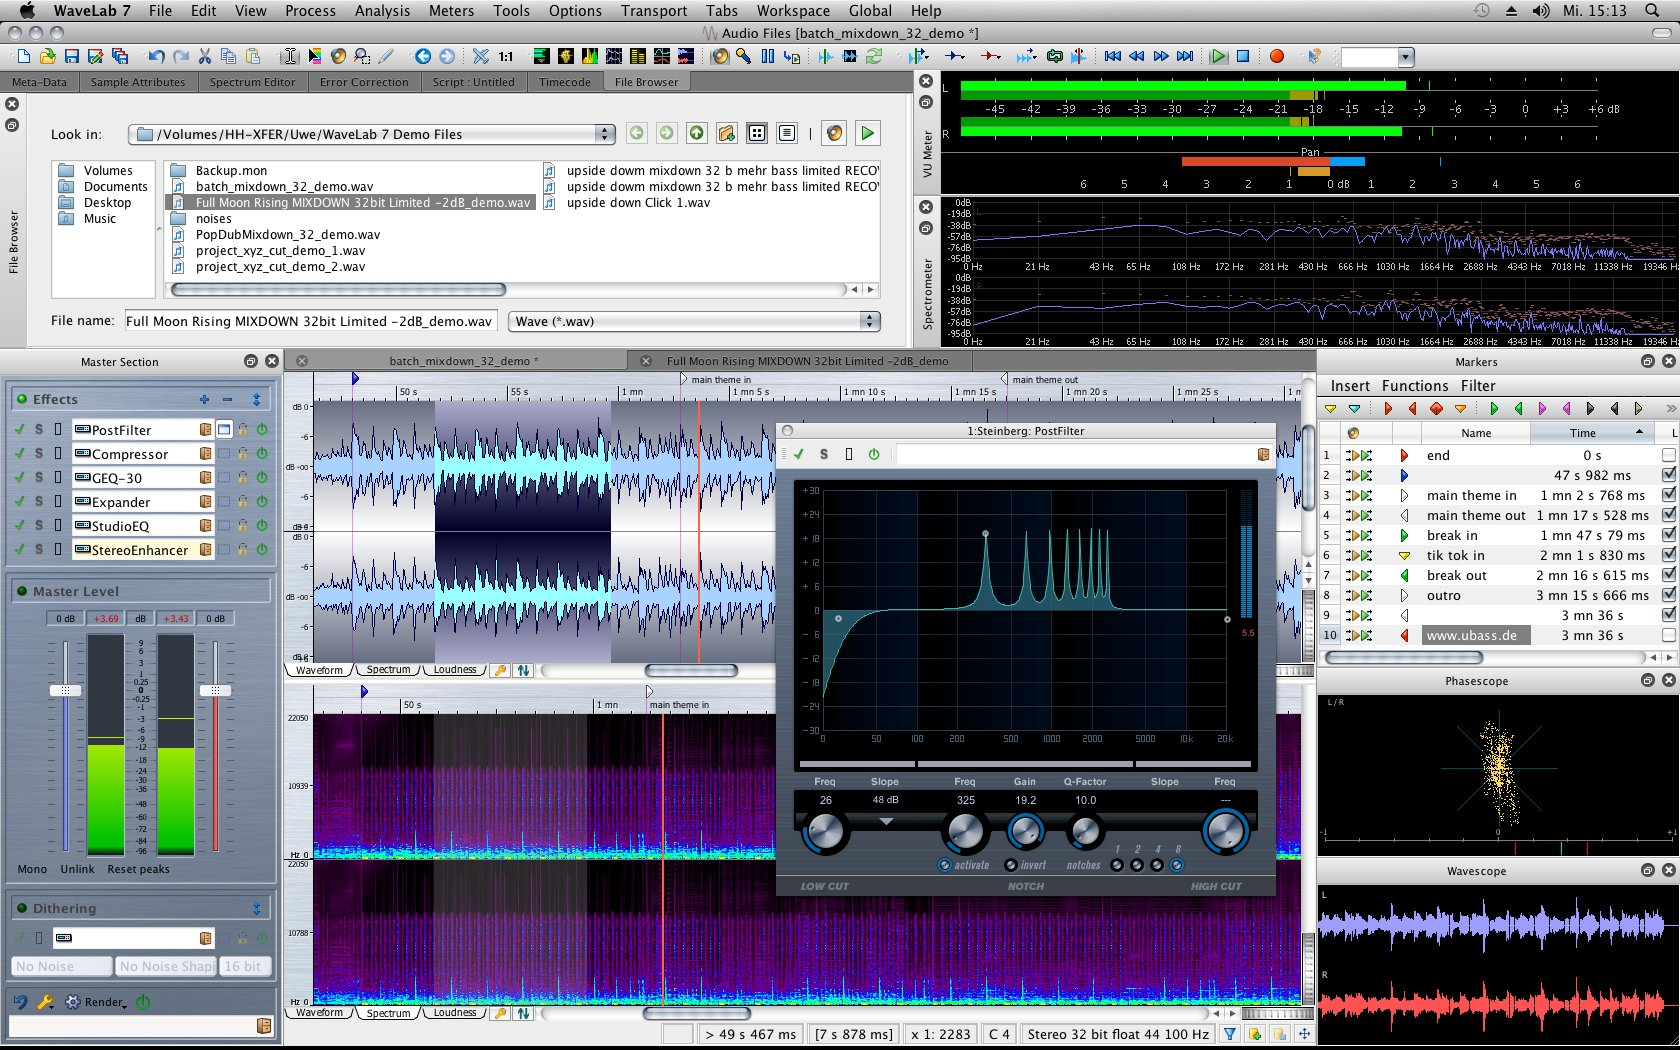 Wavelab Screenshot -Choosing A Digital Audio Workstation (DAW)